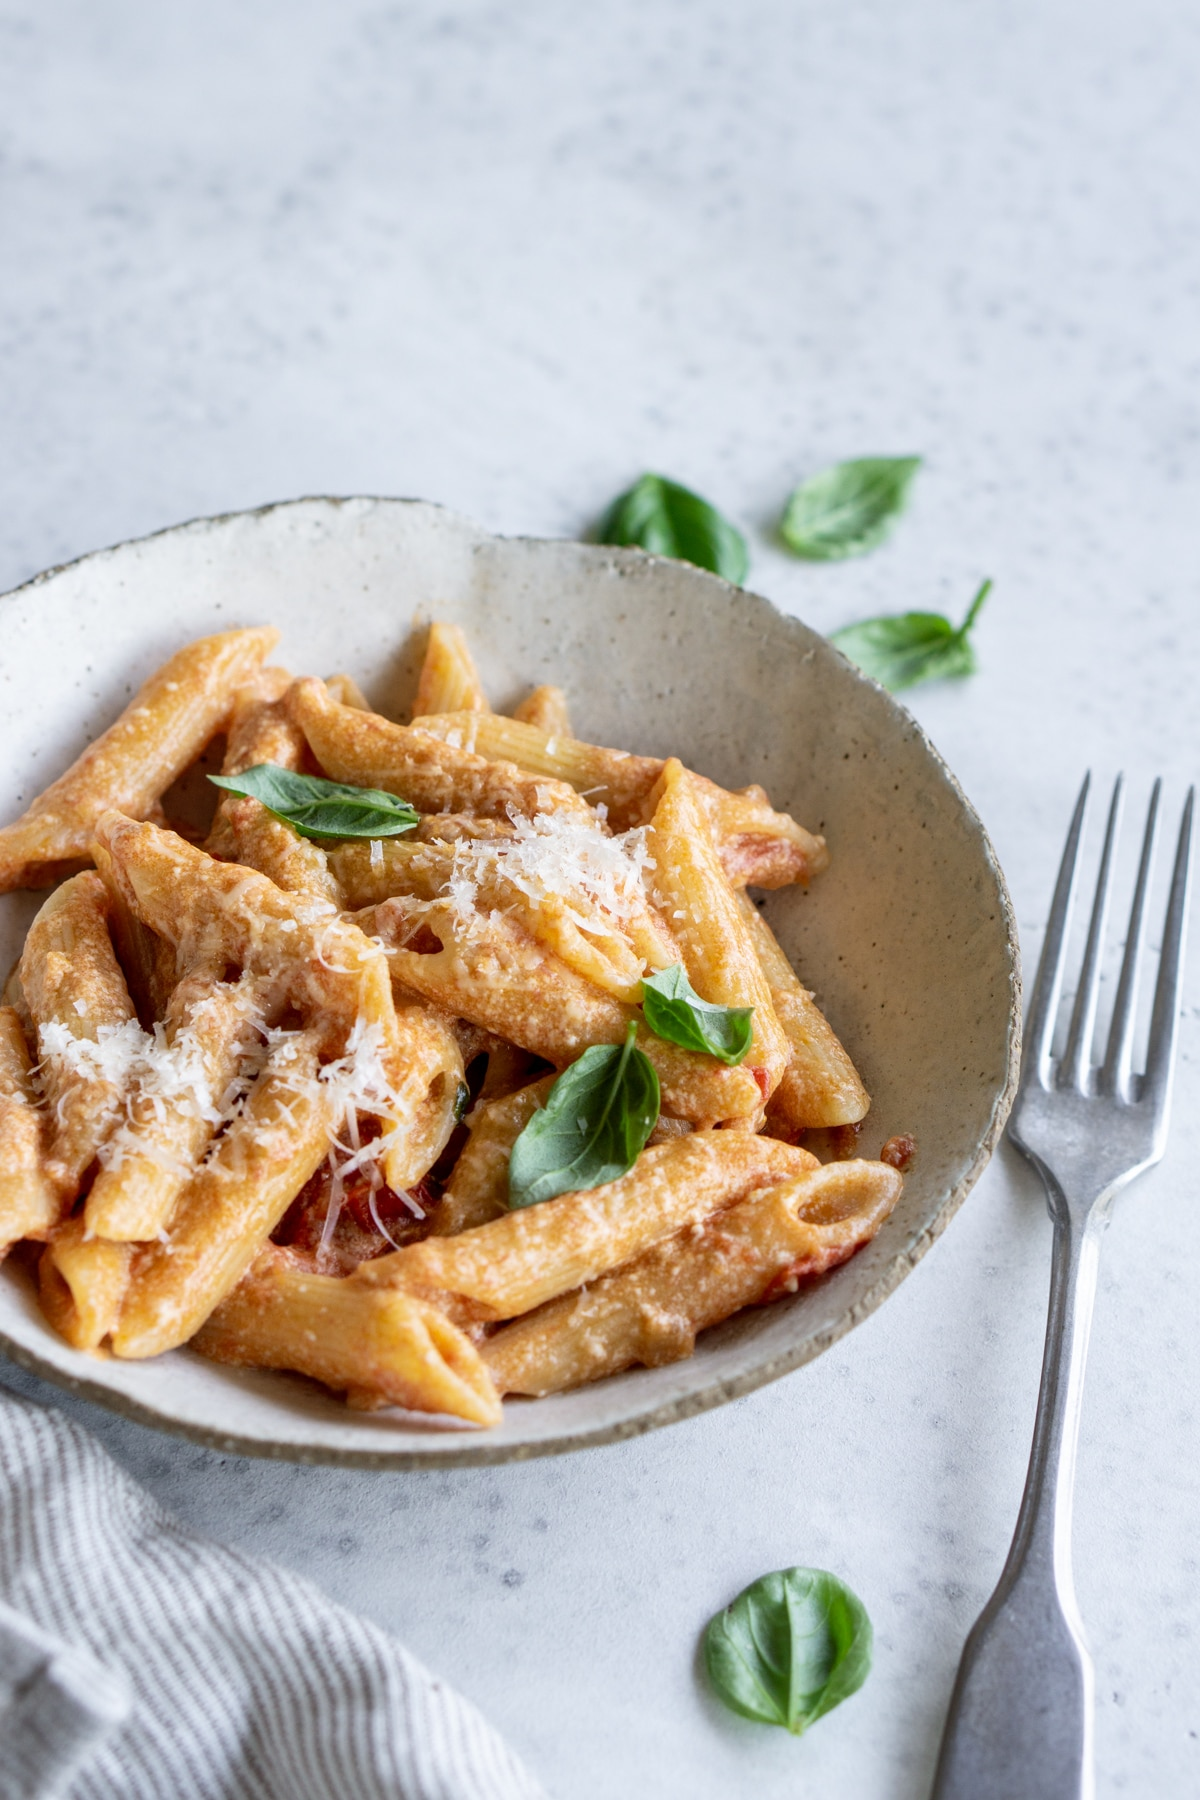 Tomato ricotta pasta in a plate topped with fresh basil